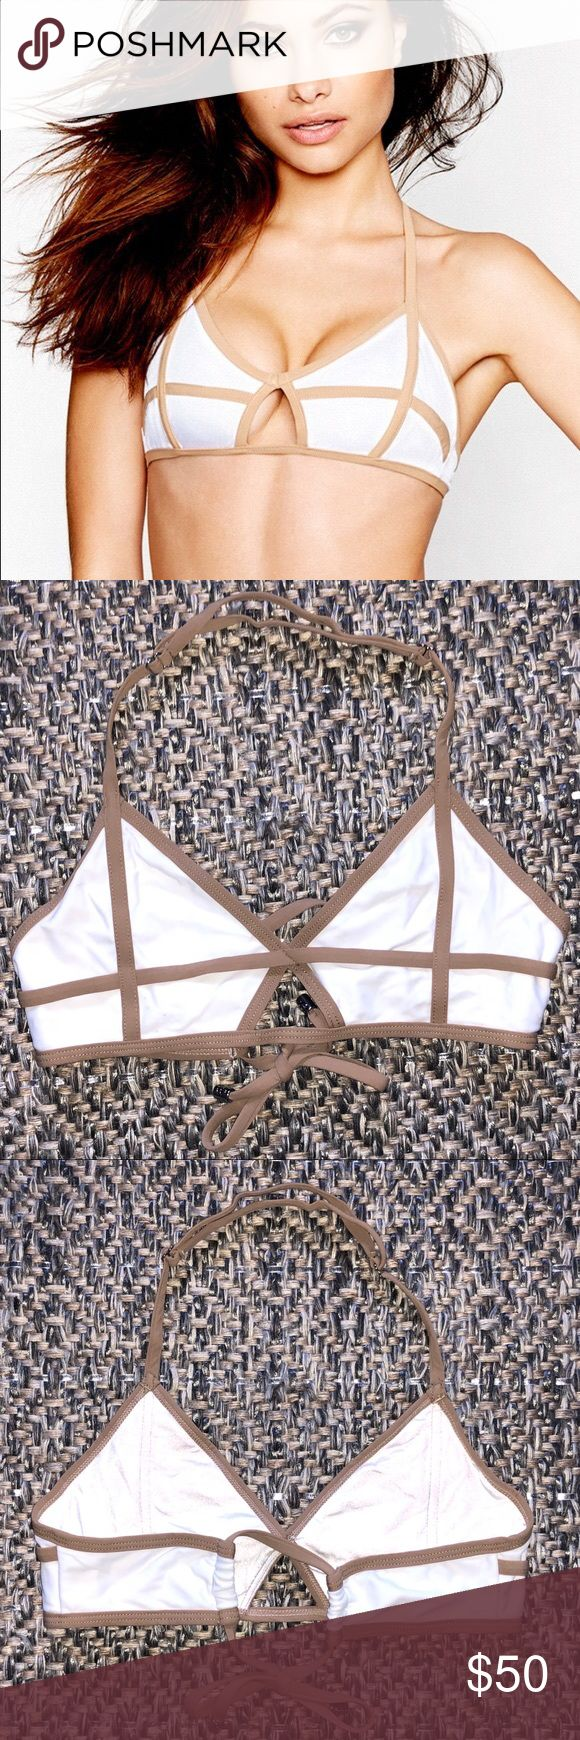 Beach Bunny Swimwear Bikini Top Beach Bunny Swimwear Bikini Top in white and nude. Slider halter neck strap and back tie. I just noticed a couple spots on the top but they are very hard to notice.   Box 5 Beach Bunny Swim Bikinis